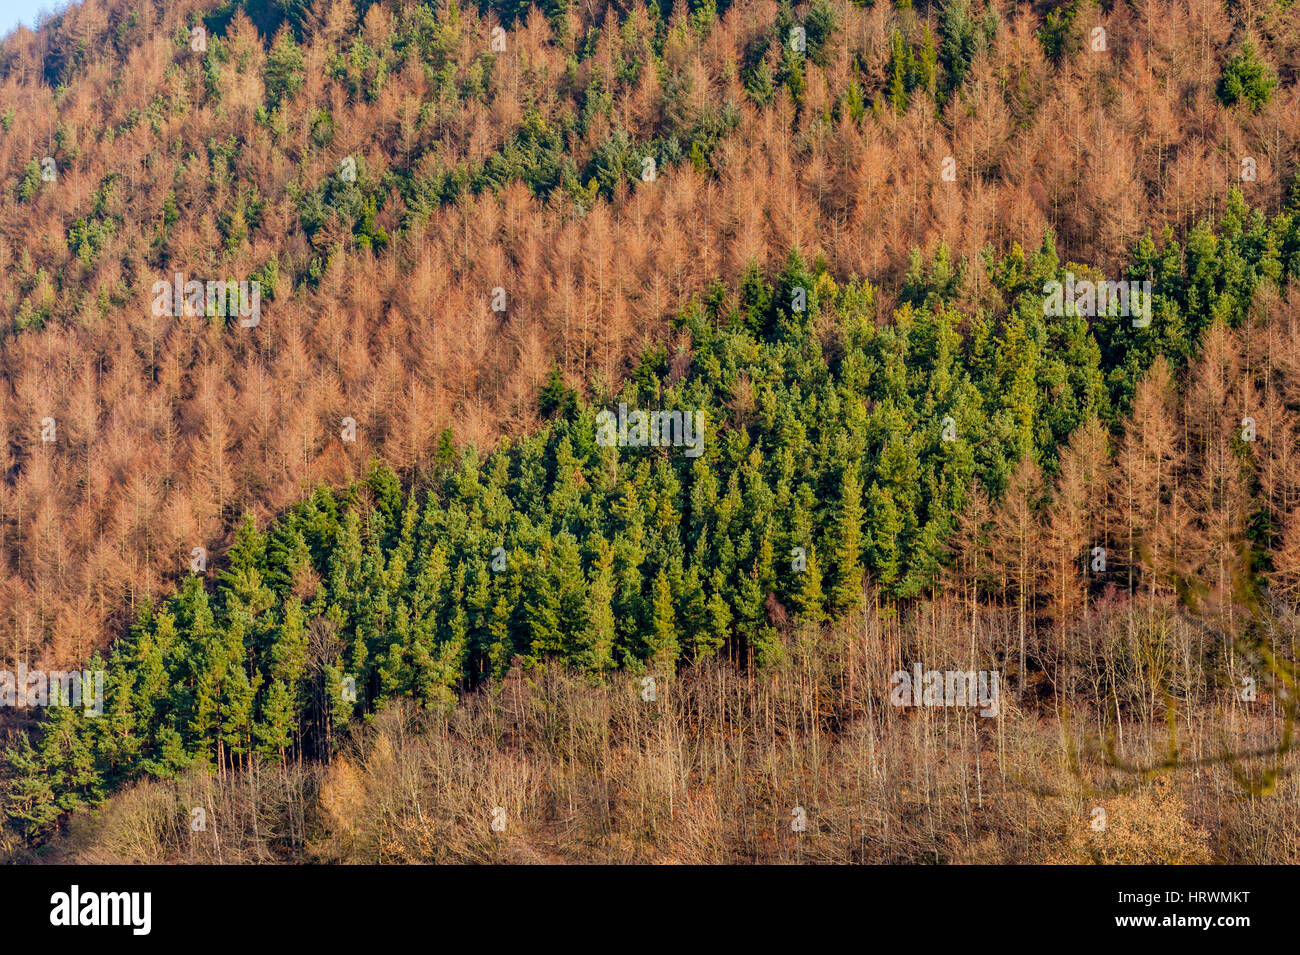 Conifer woods in The countryside around Llangollen and the Horseshoe pass. - Stock Image